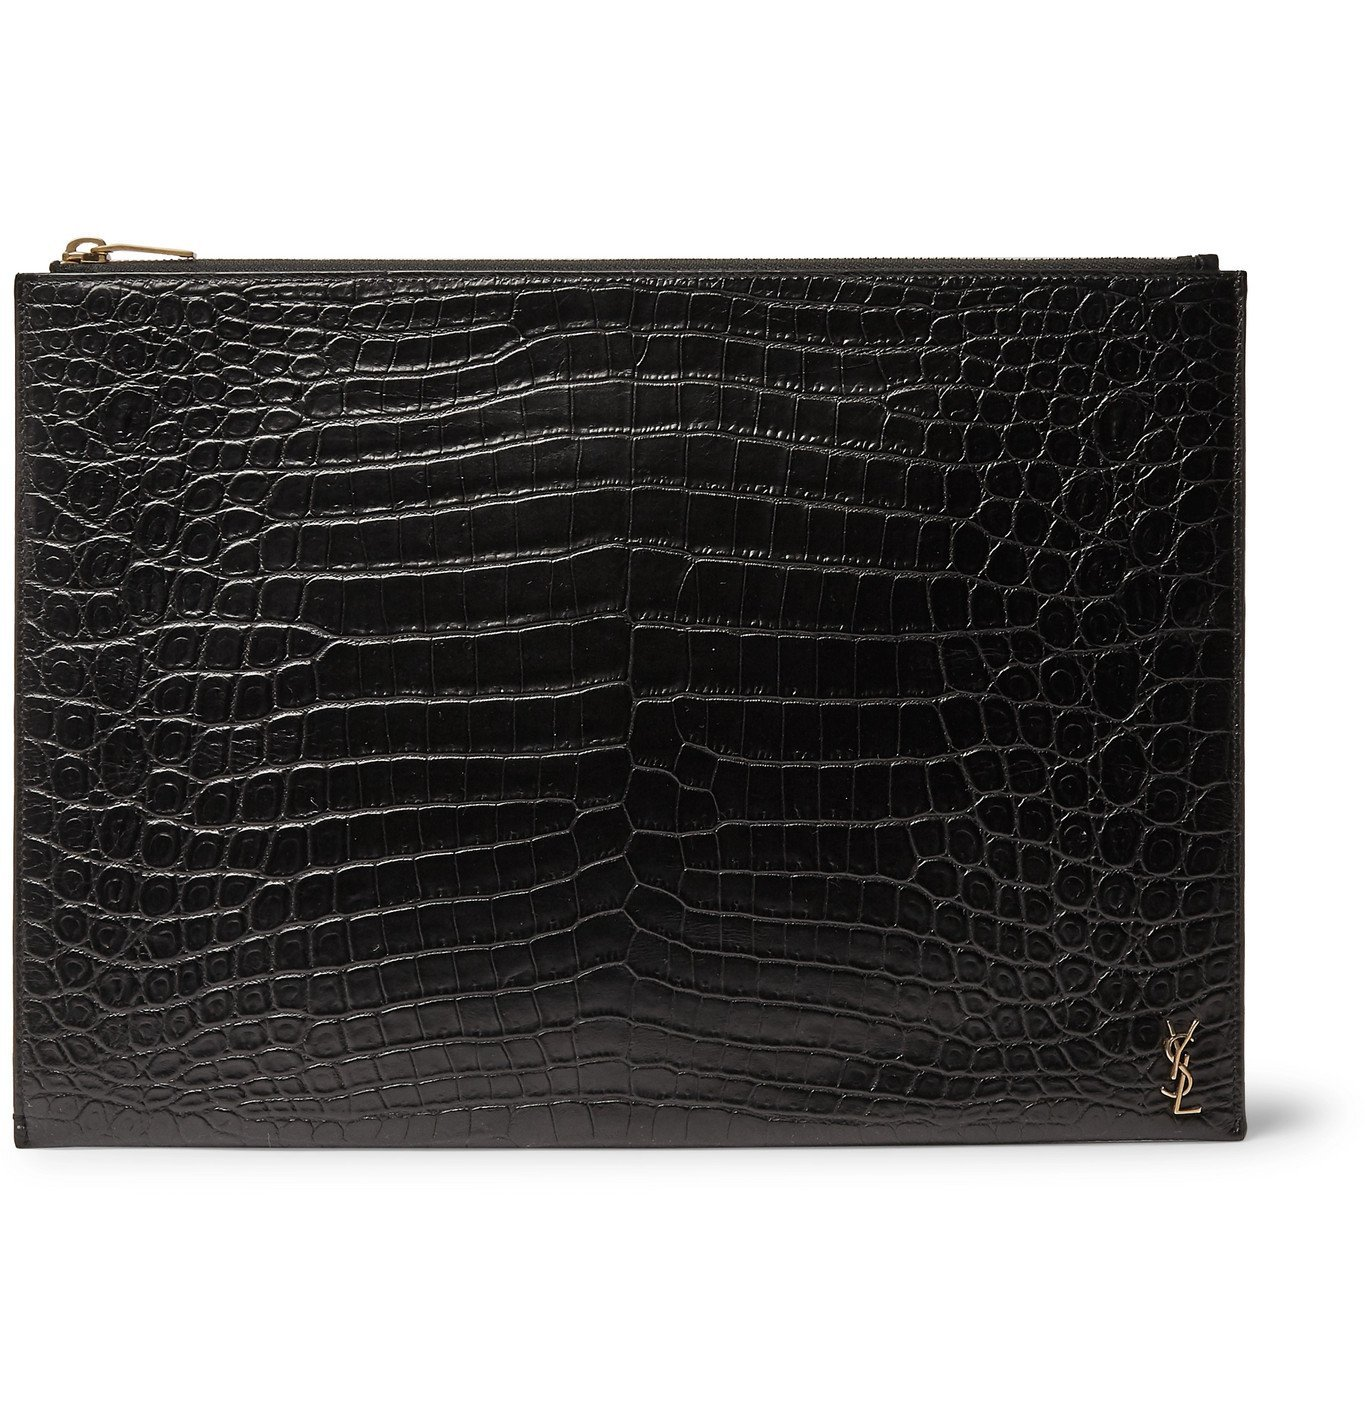 Photo: SAINT LAURENT - Logo-Appliquéd Croc-Effect Leather Pouch - Black